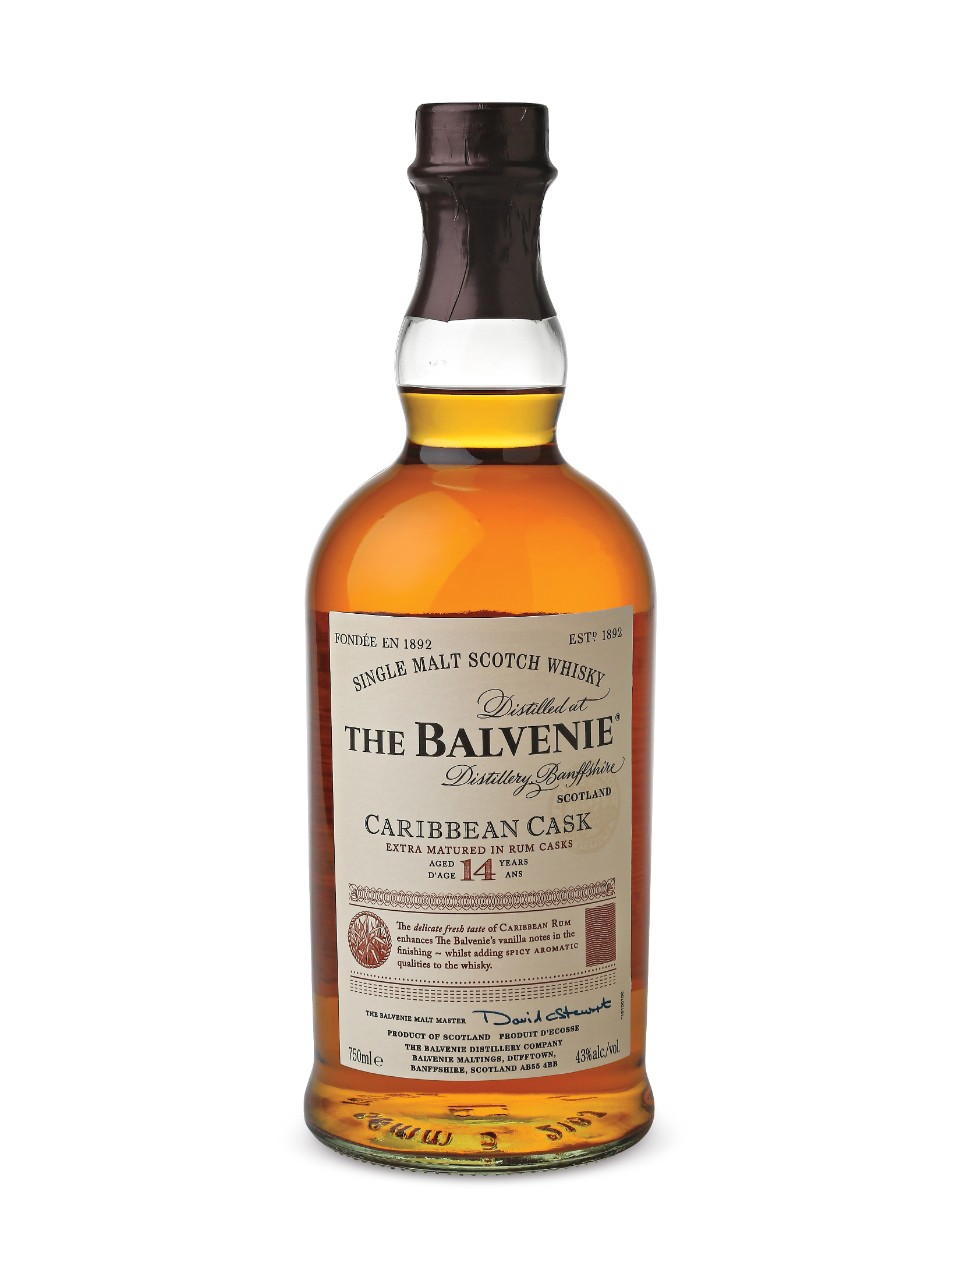 Image for The Balvenie Caribbean Cask 14 Year Old Scotch Whisky from LCBO